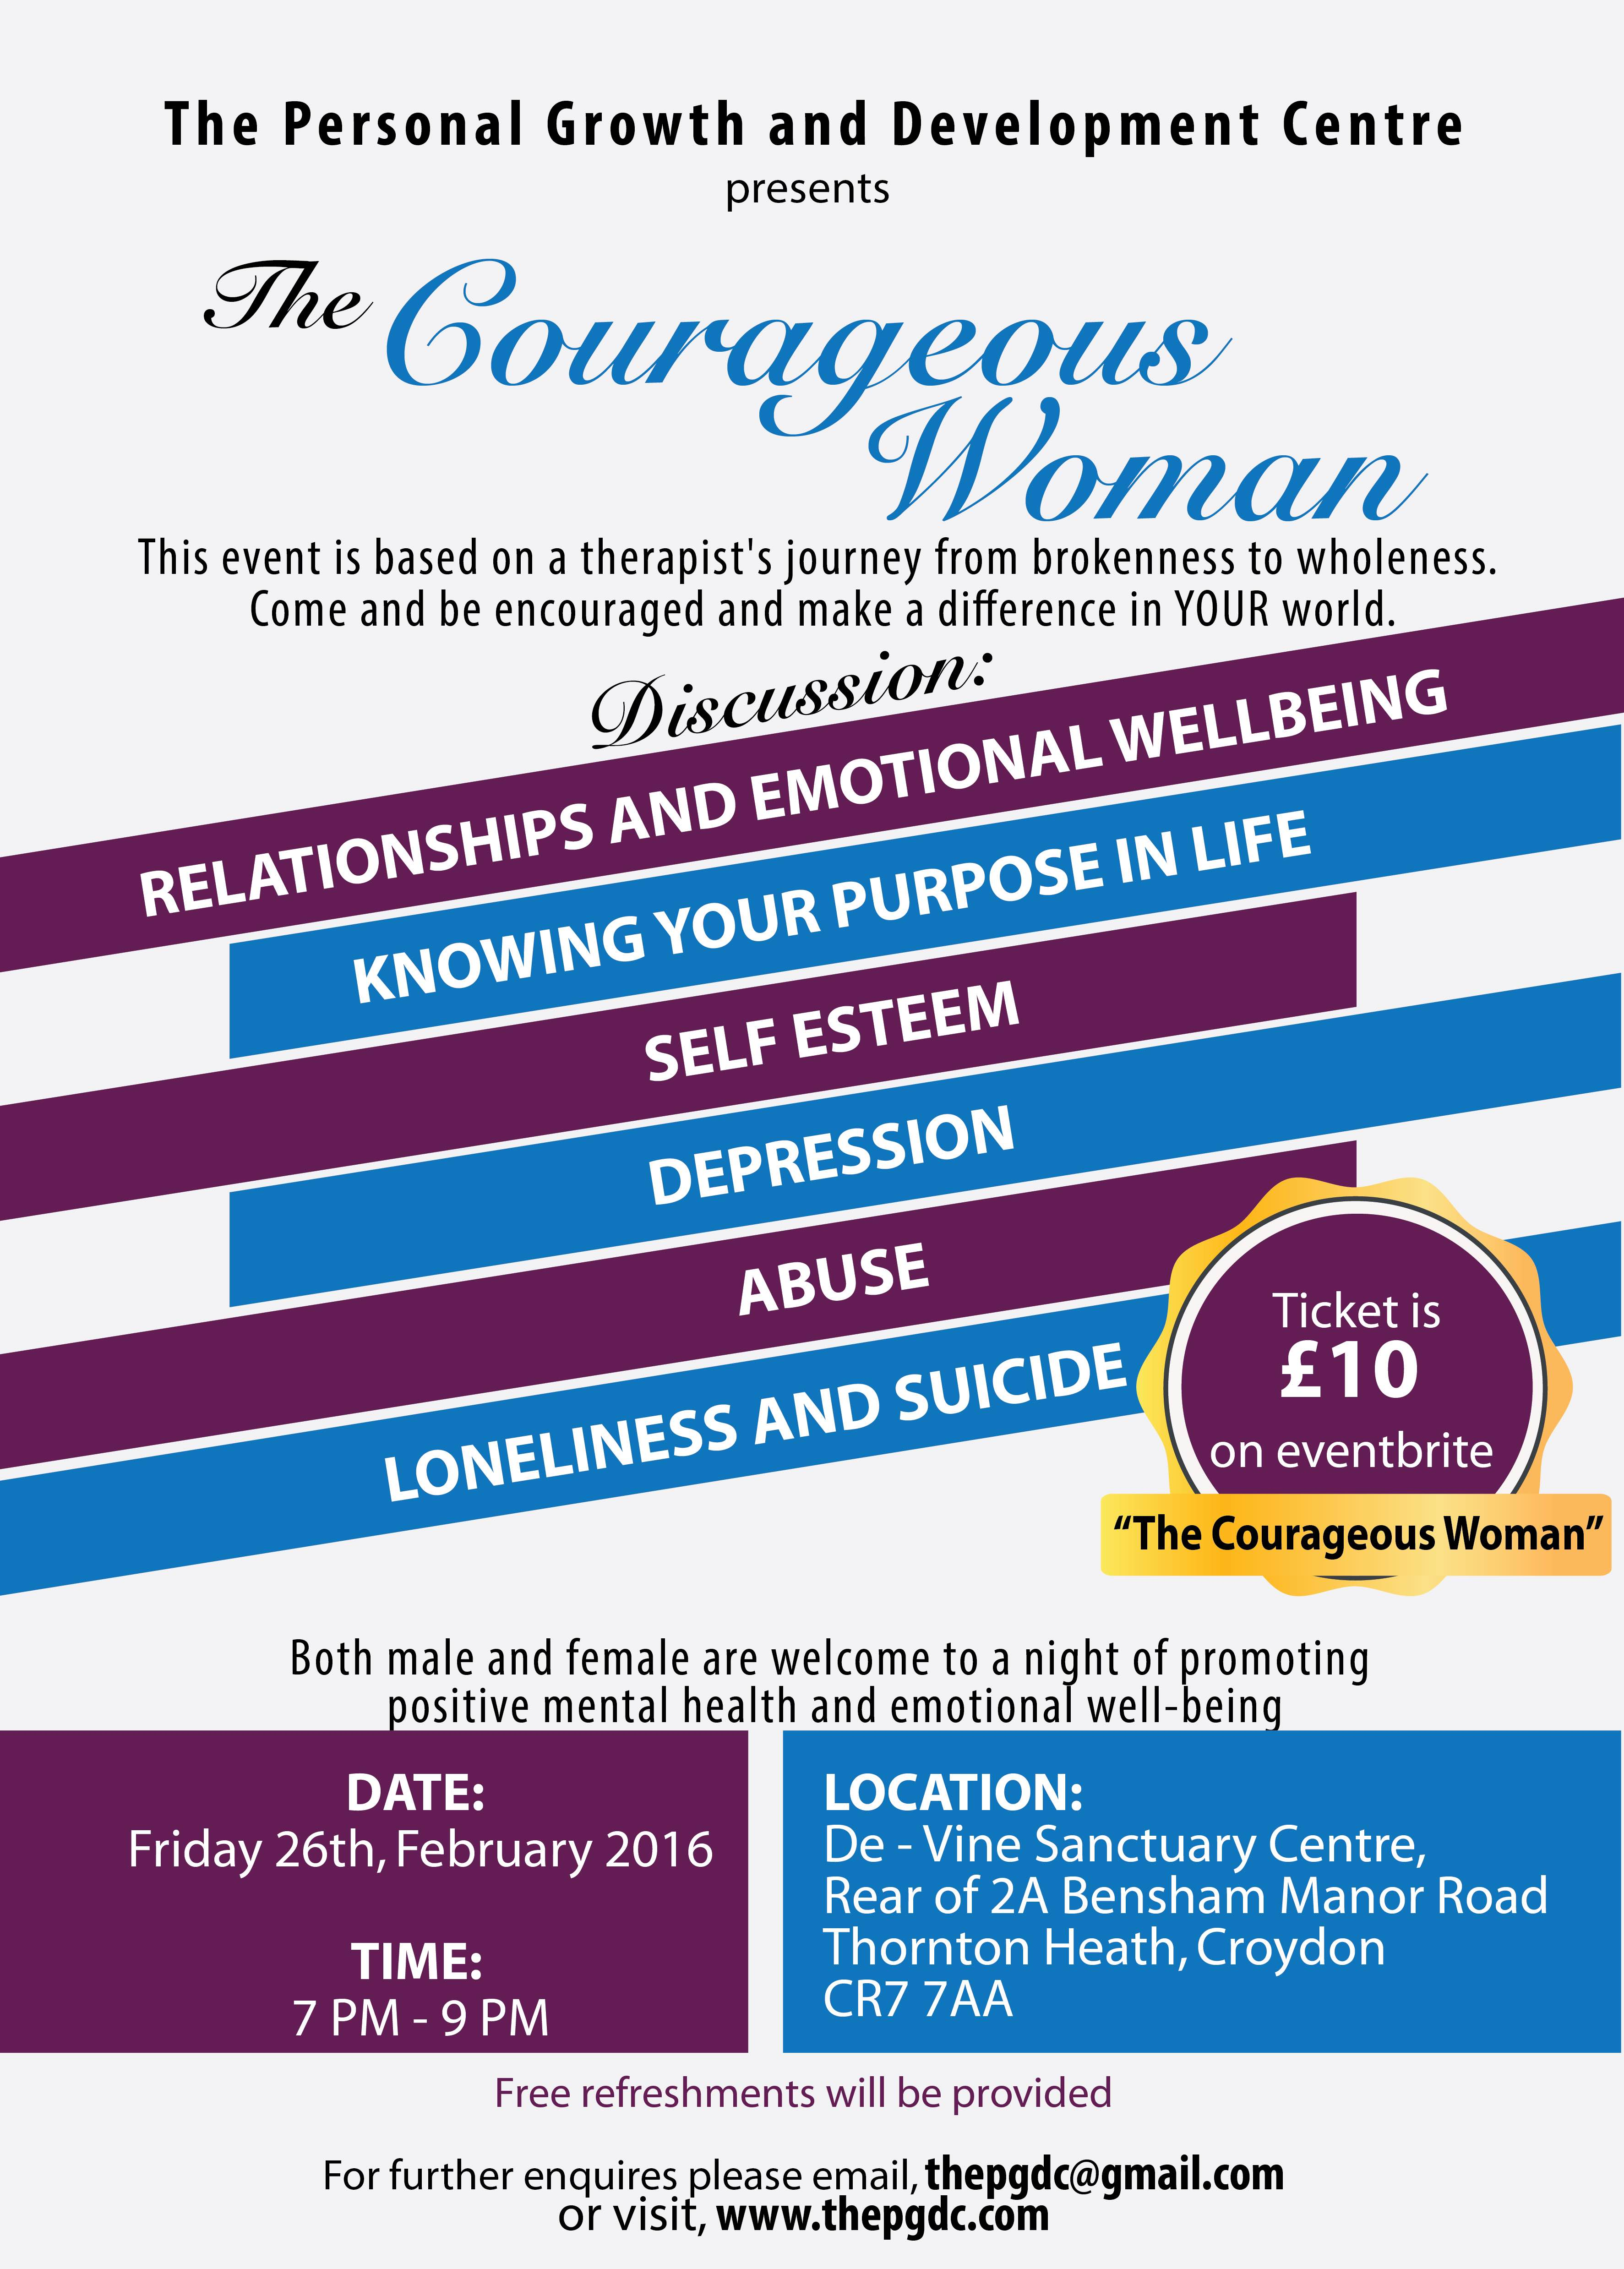 Courageous Woman event in February 2016